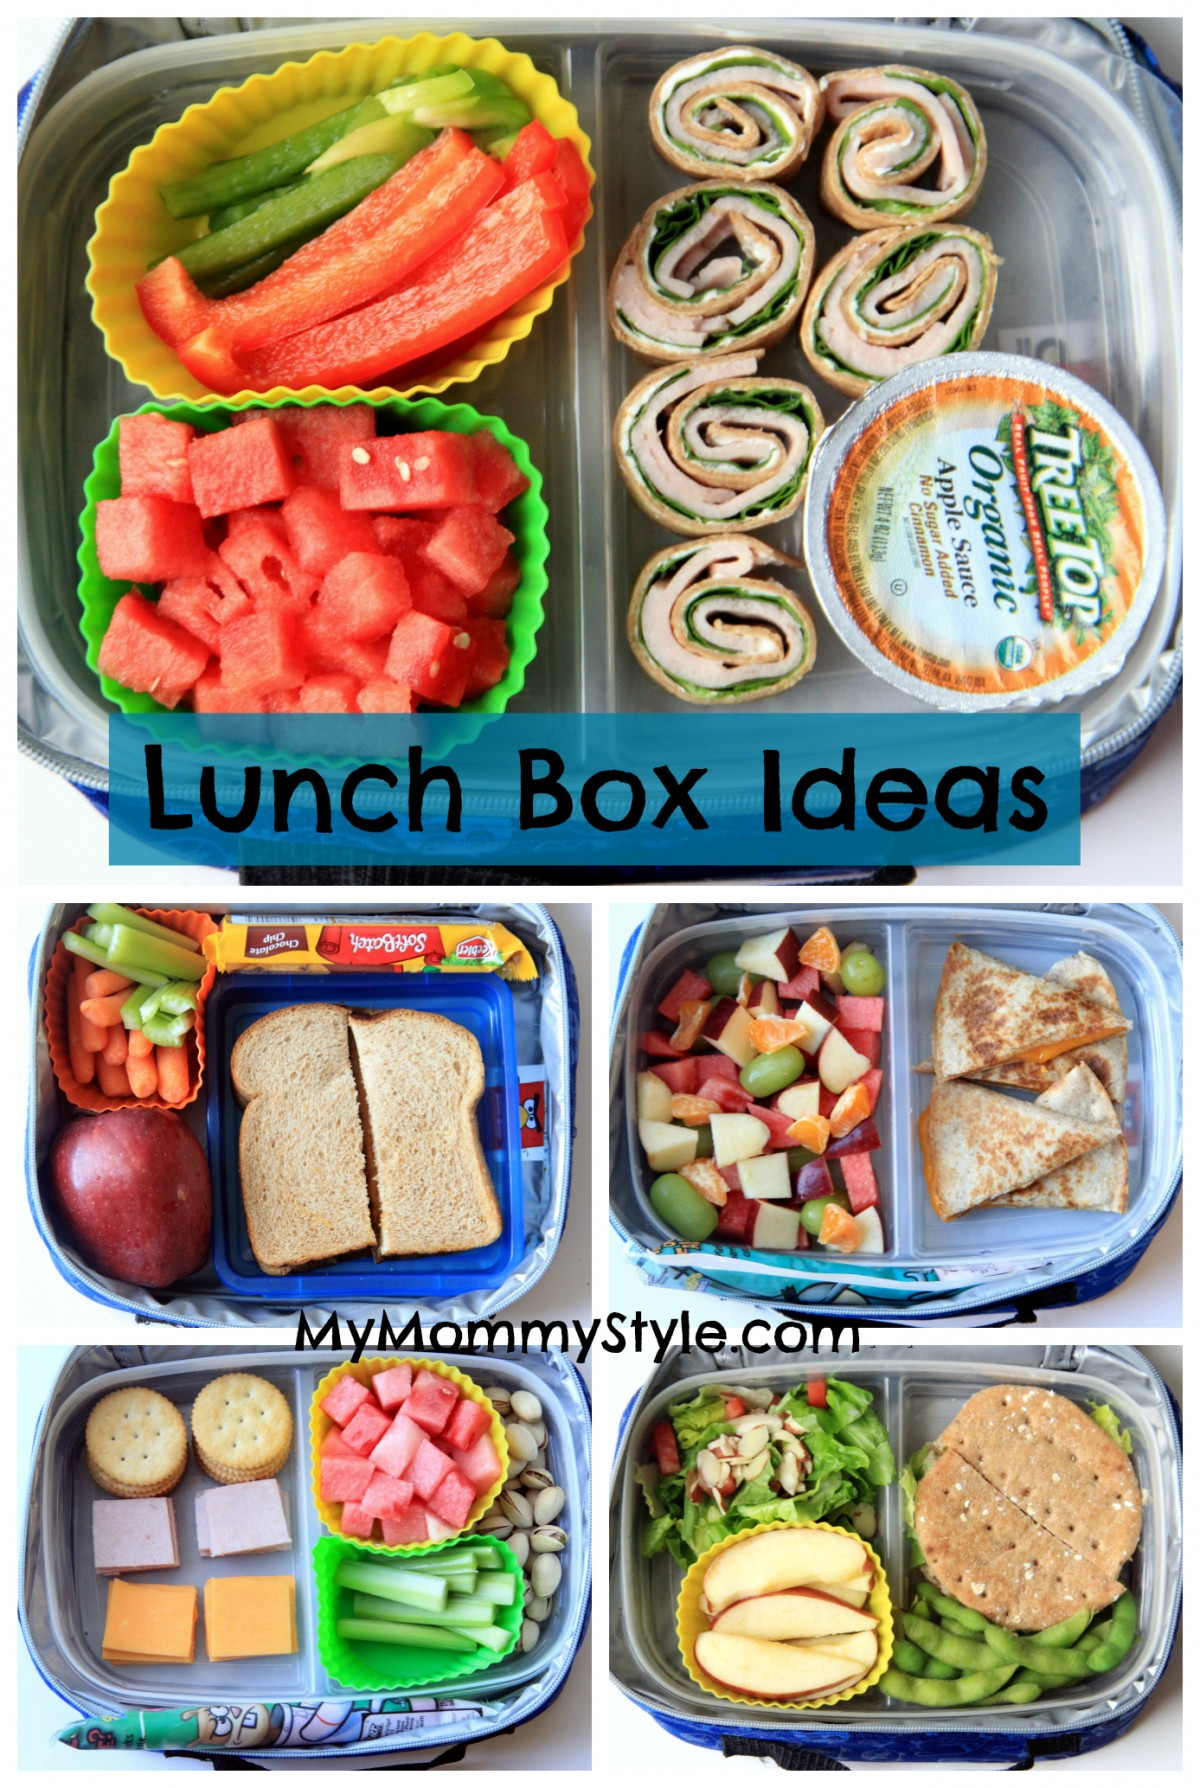 Healthy Cold Lunches  Lunch box ideas kid lunches school lunch cold lunch ideas